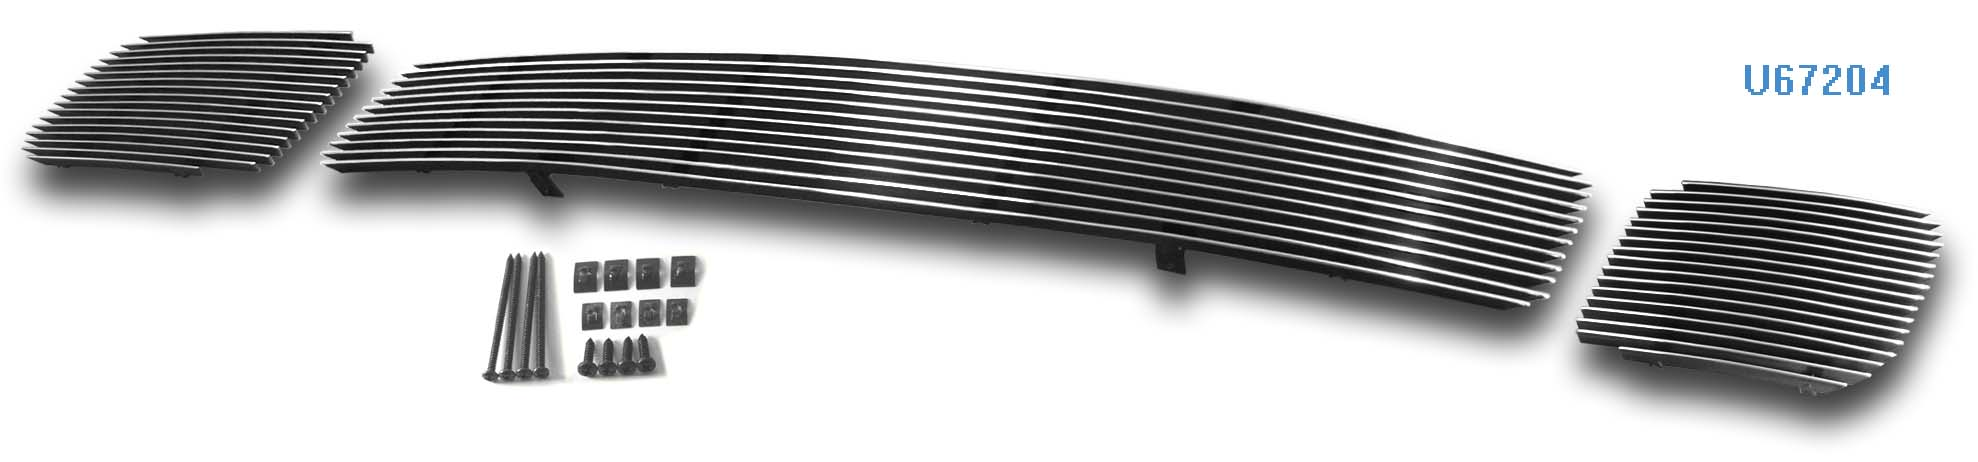 Mitsubishi Endeavor  2004-2005 Polished Lower Bumper Aluminum Billet Grille